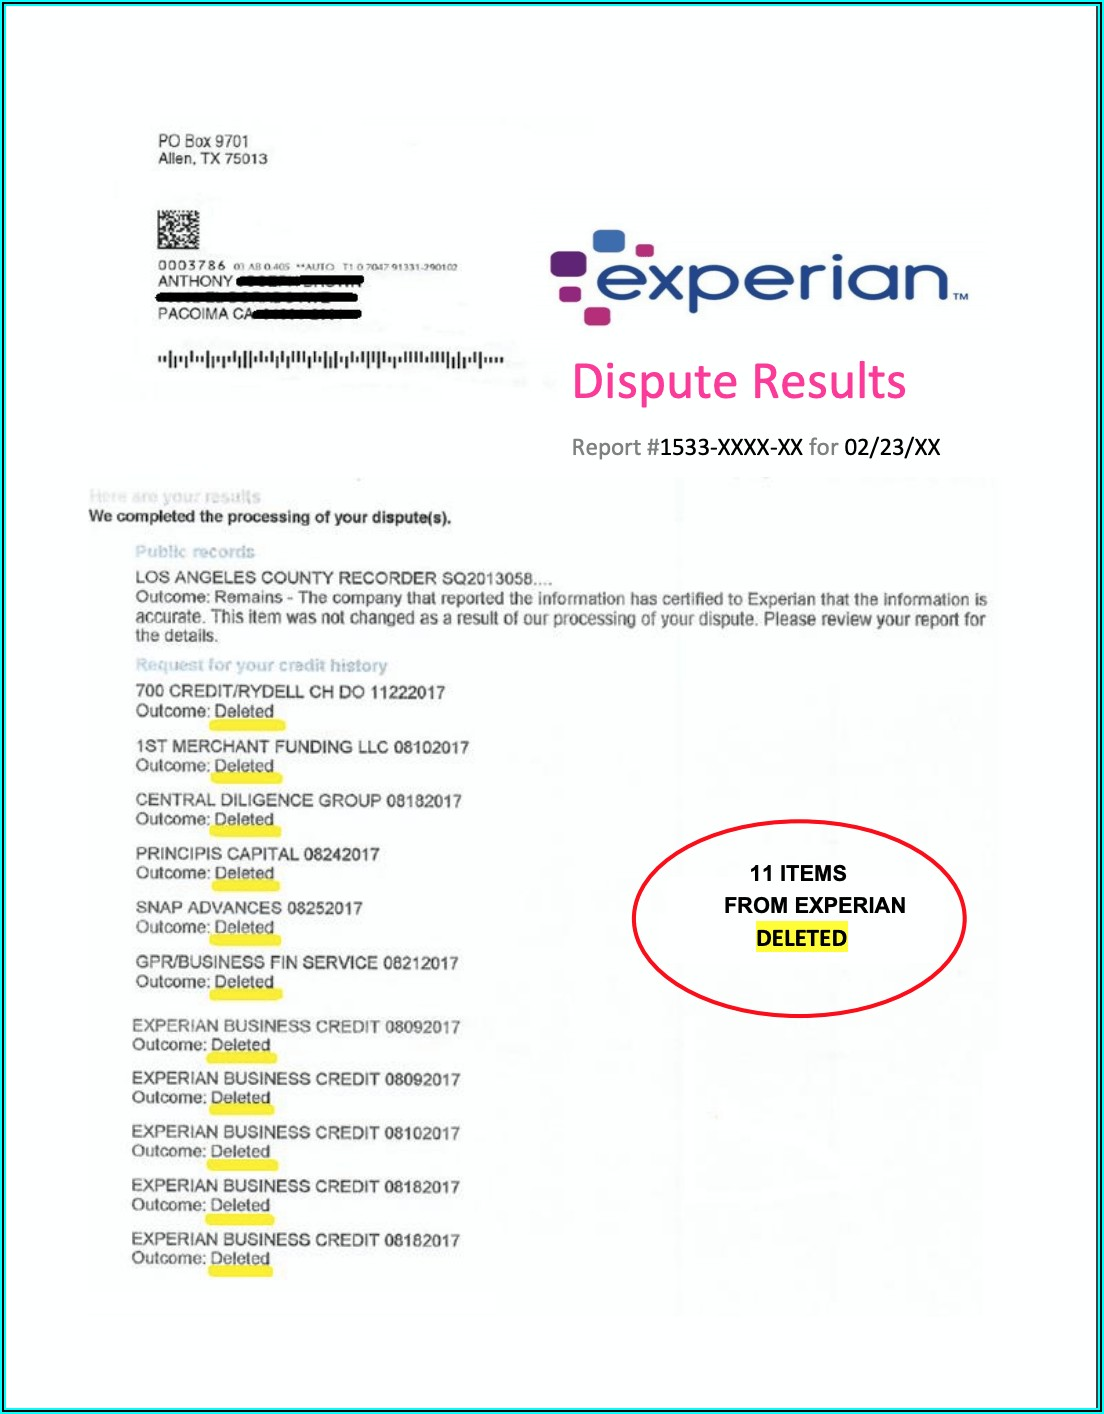 Credit Dispute Form For Experian